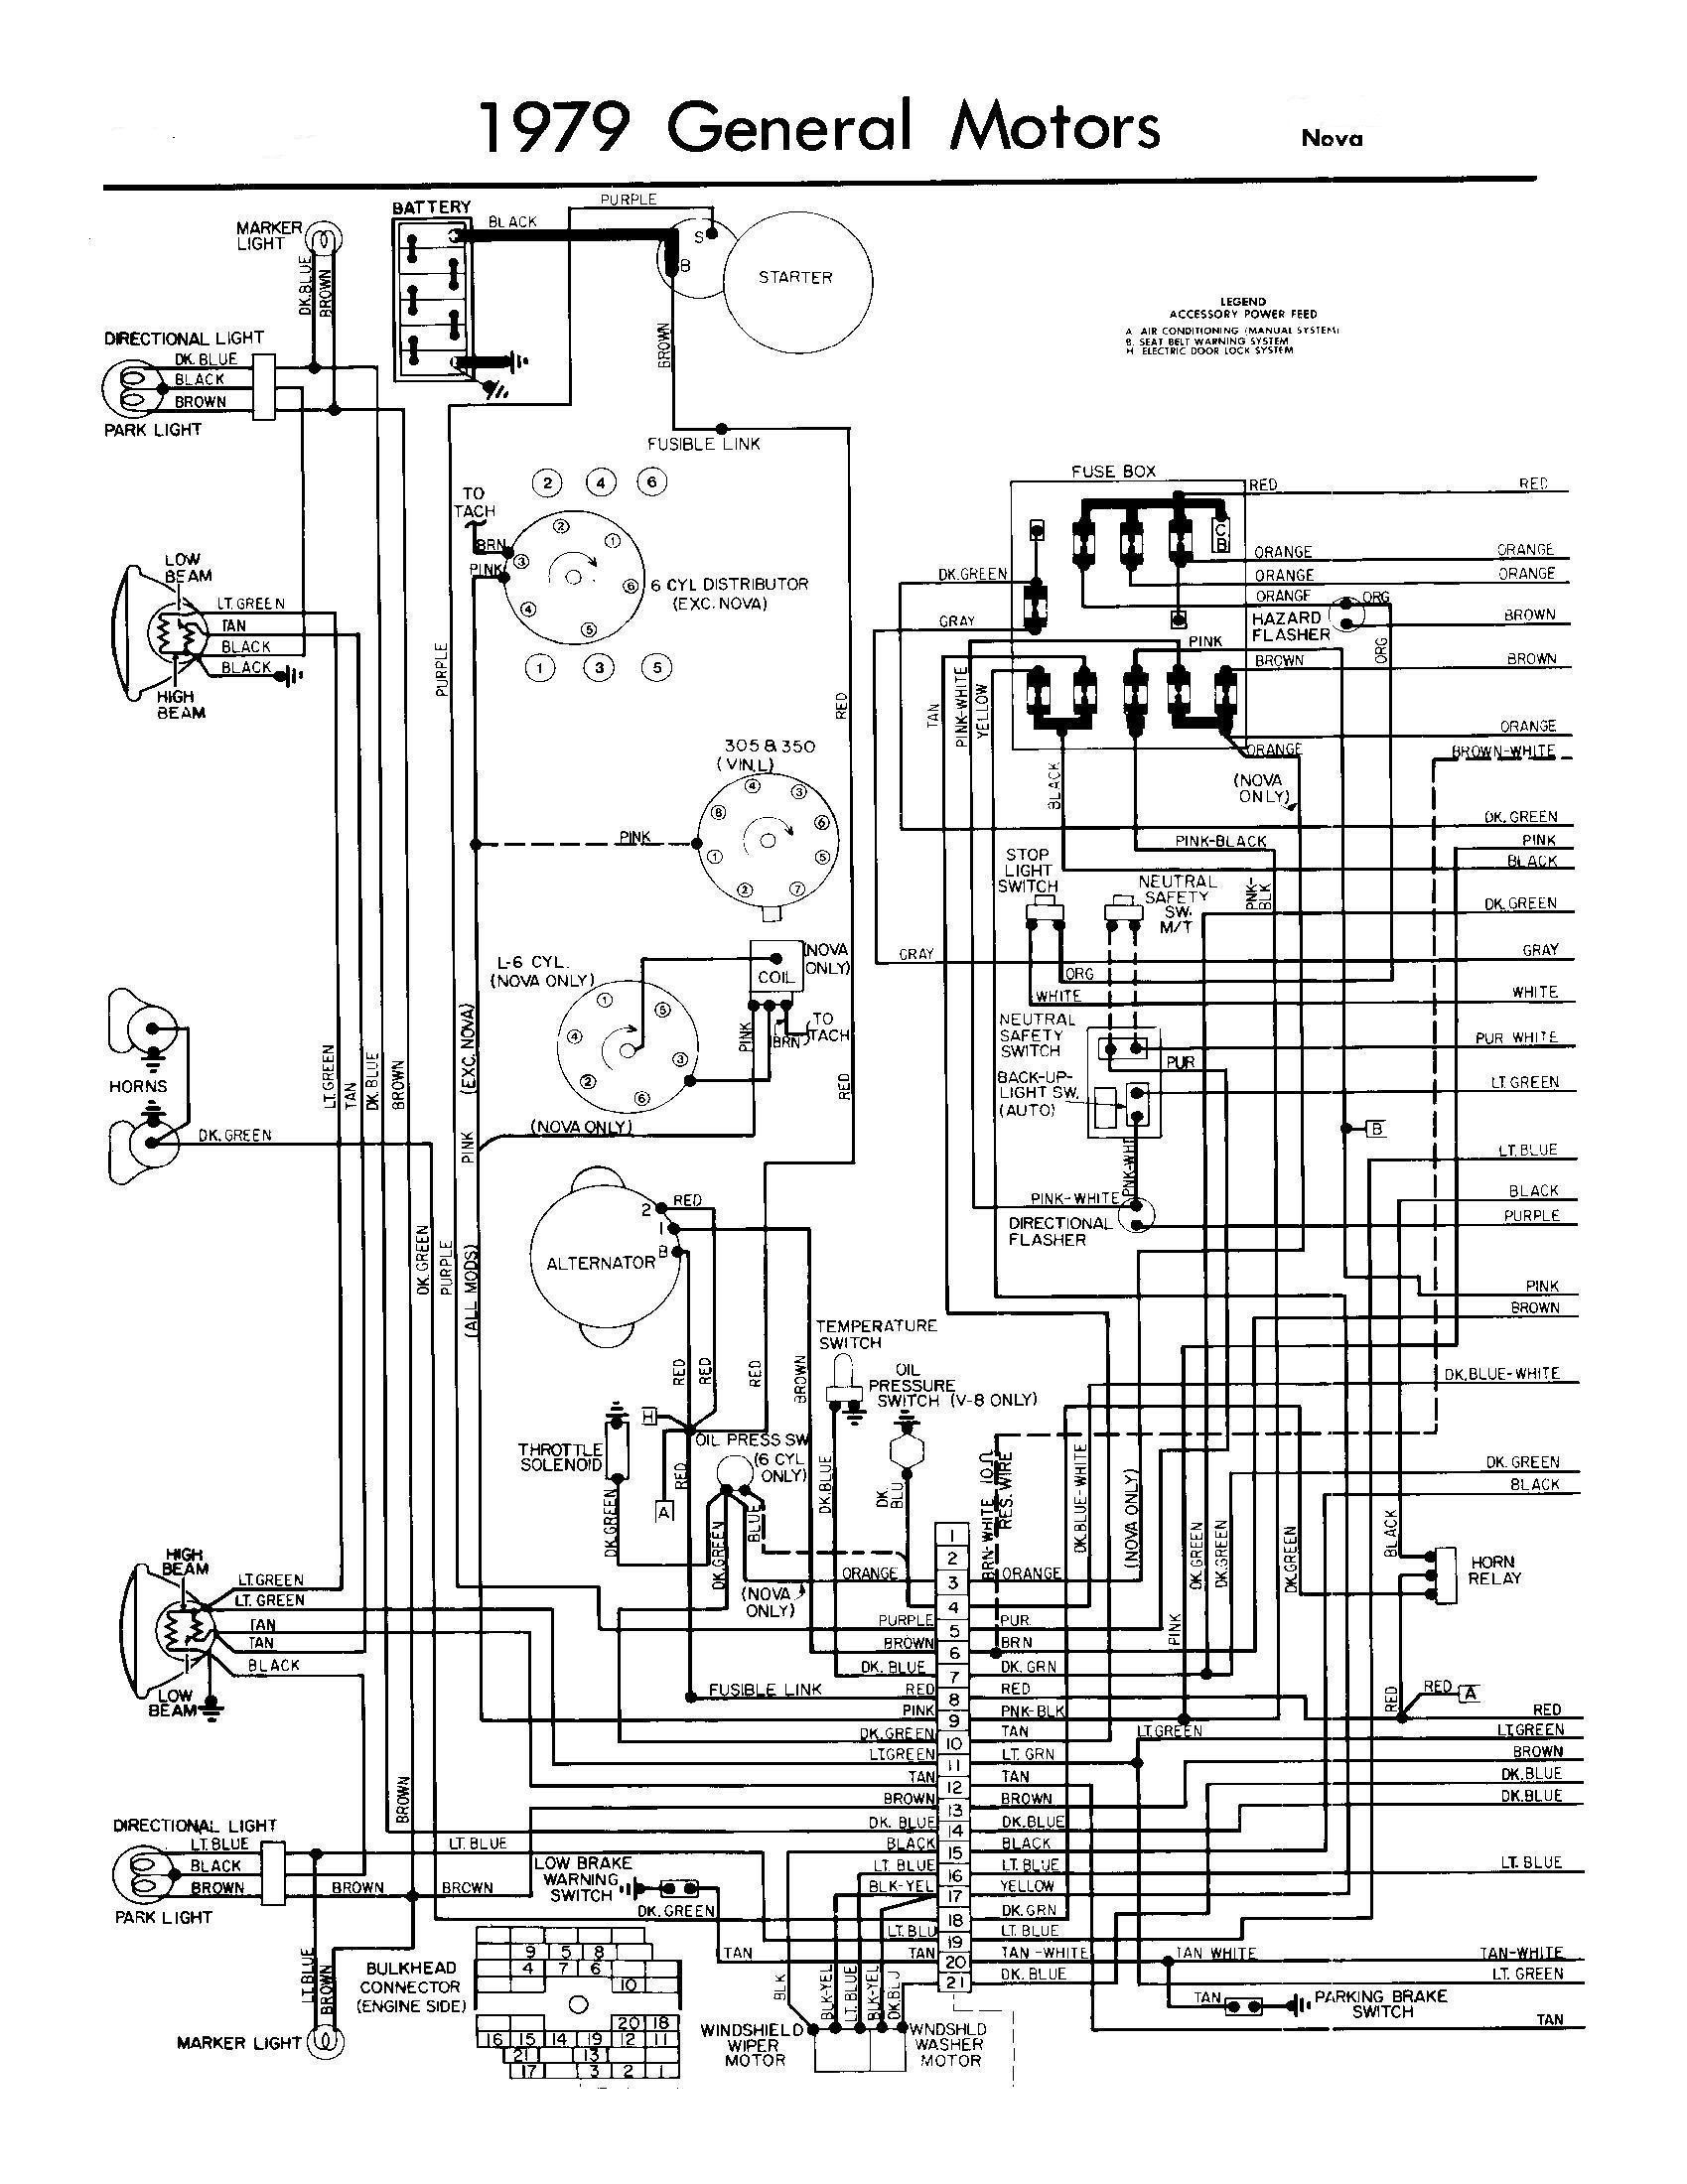 X411 Chevy 350 Ignition Coil Wiring Diagram I568 Photobucket Com G8 Headlight Models For 1979 Gmc Light Duty Truck Series 1035car Rh 107 191 48 167